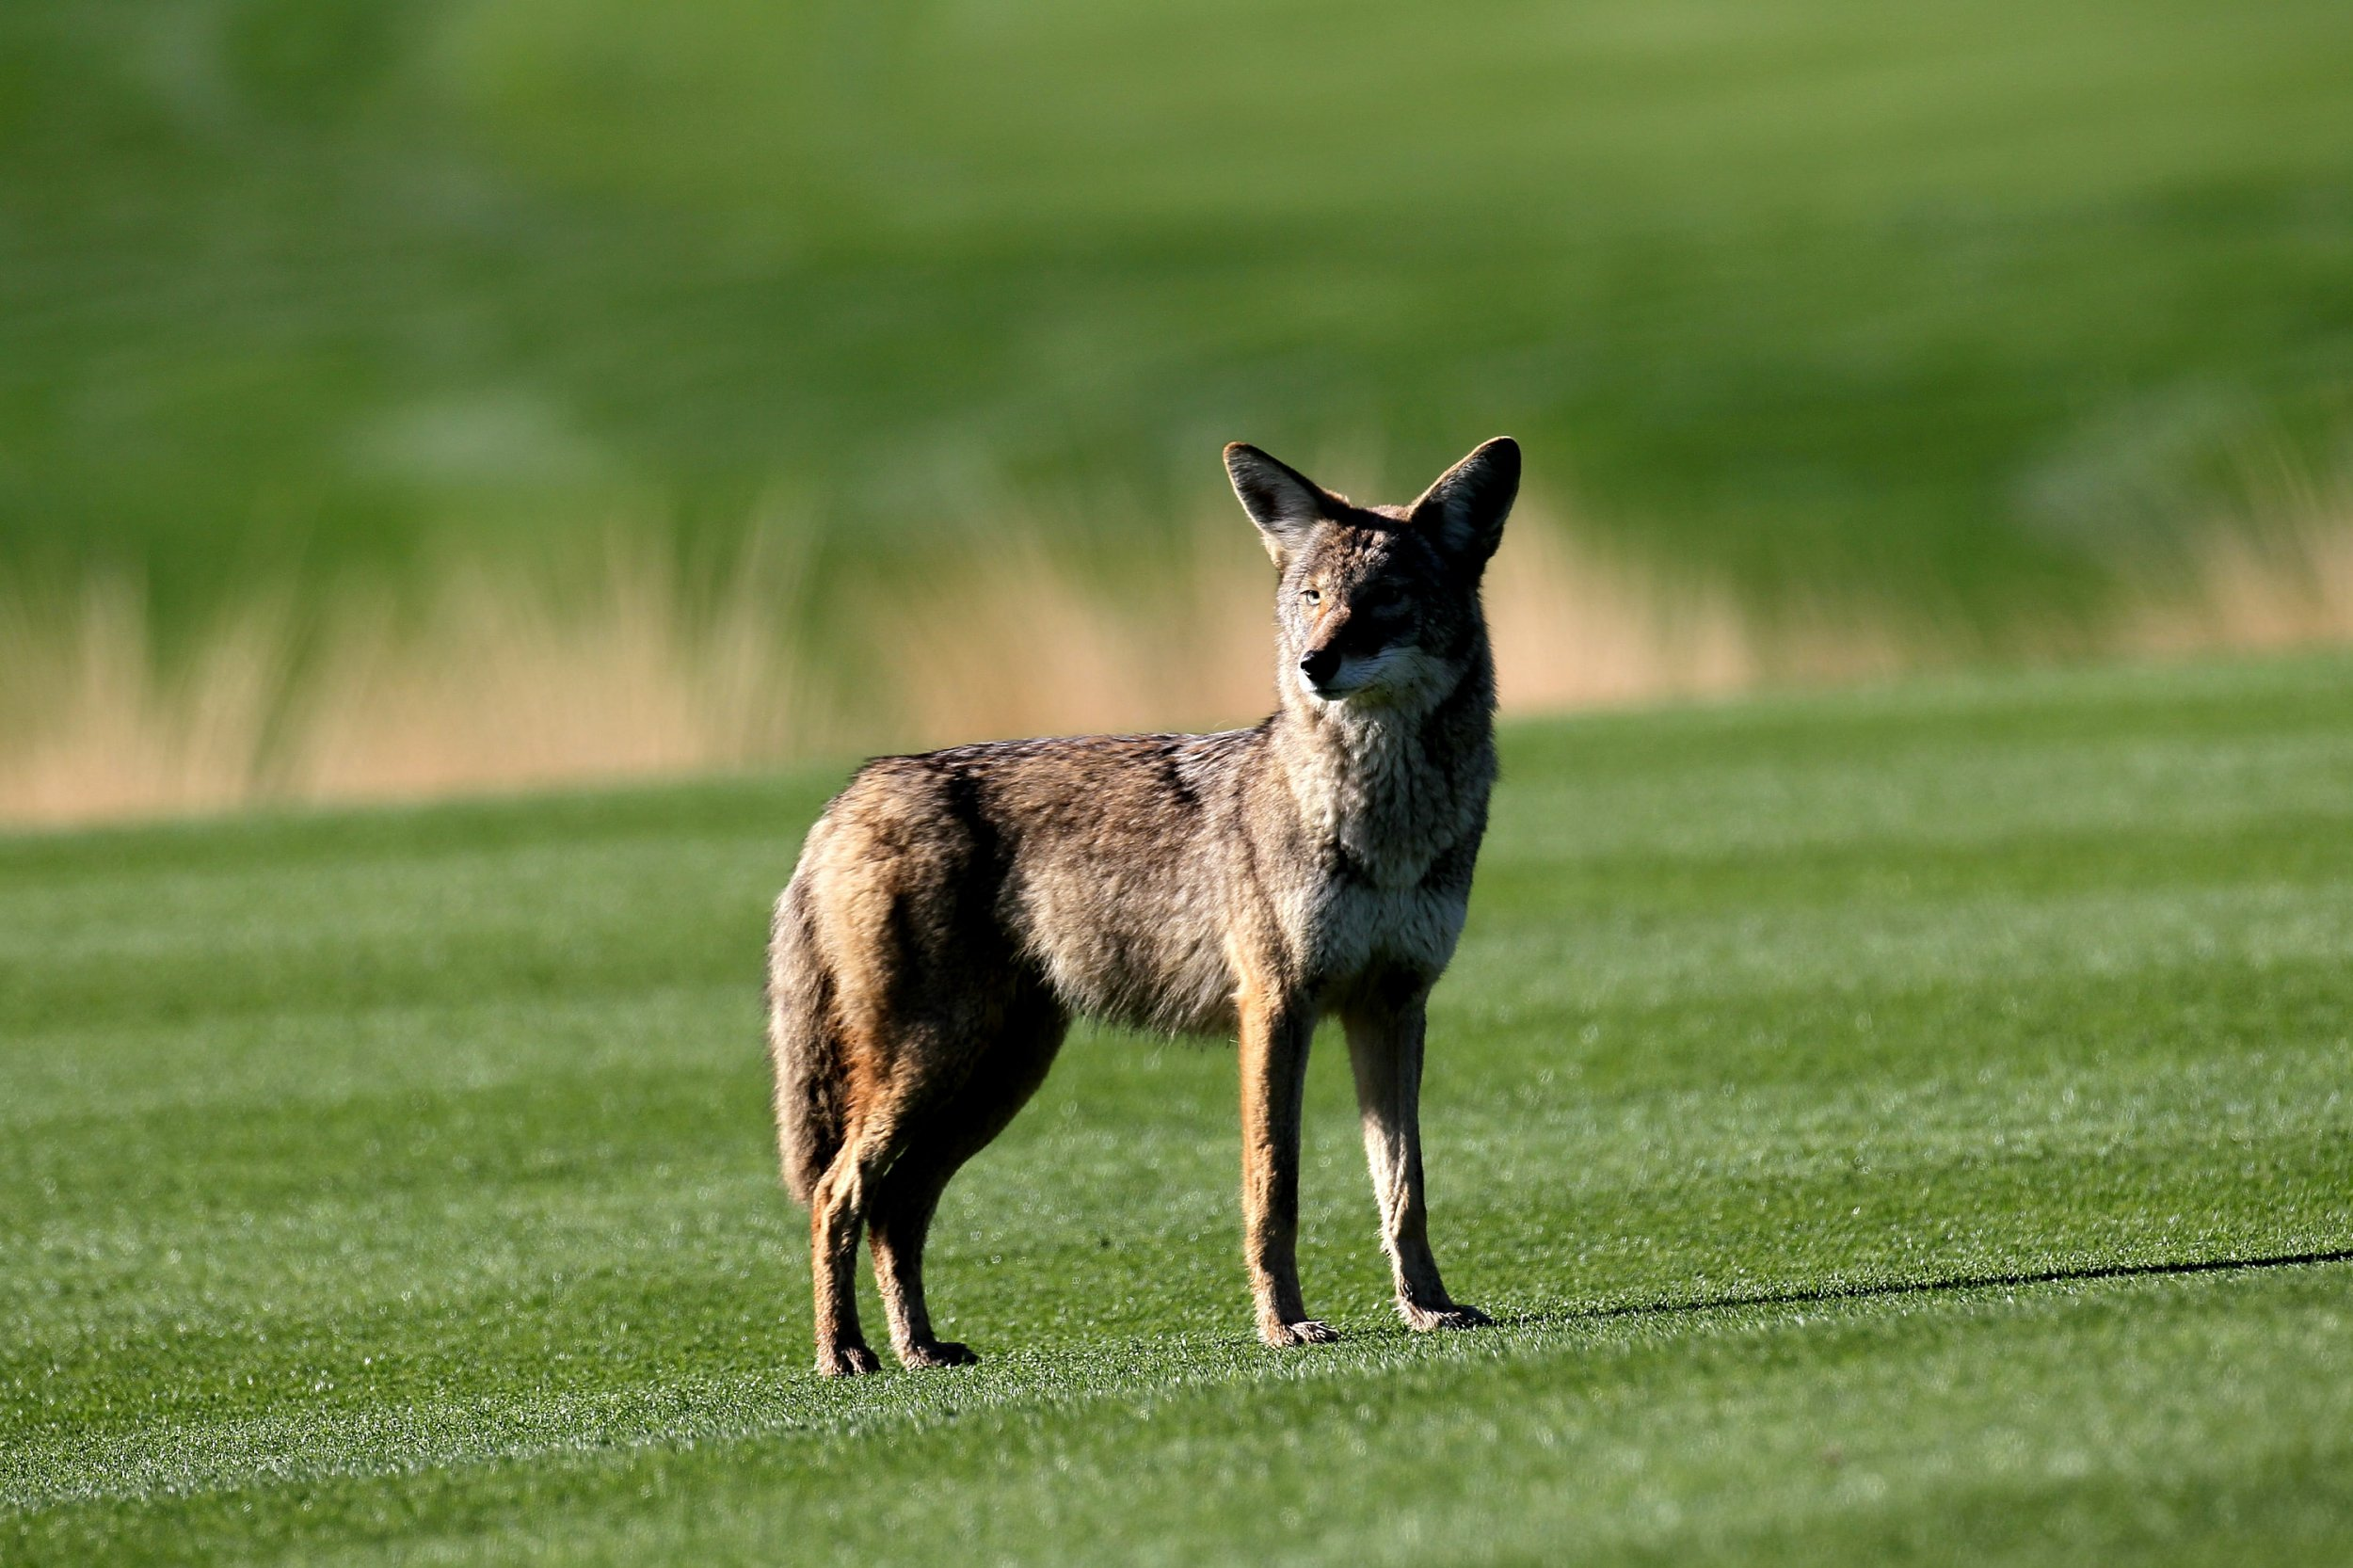 Coyote Attacks Young Girl Outside of Her House